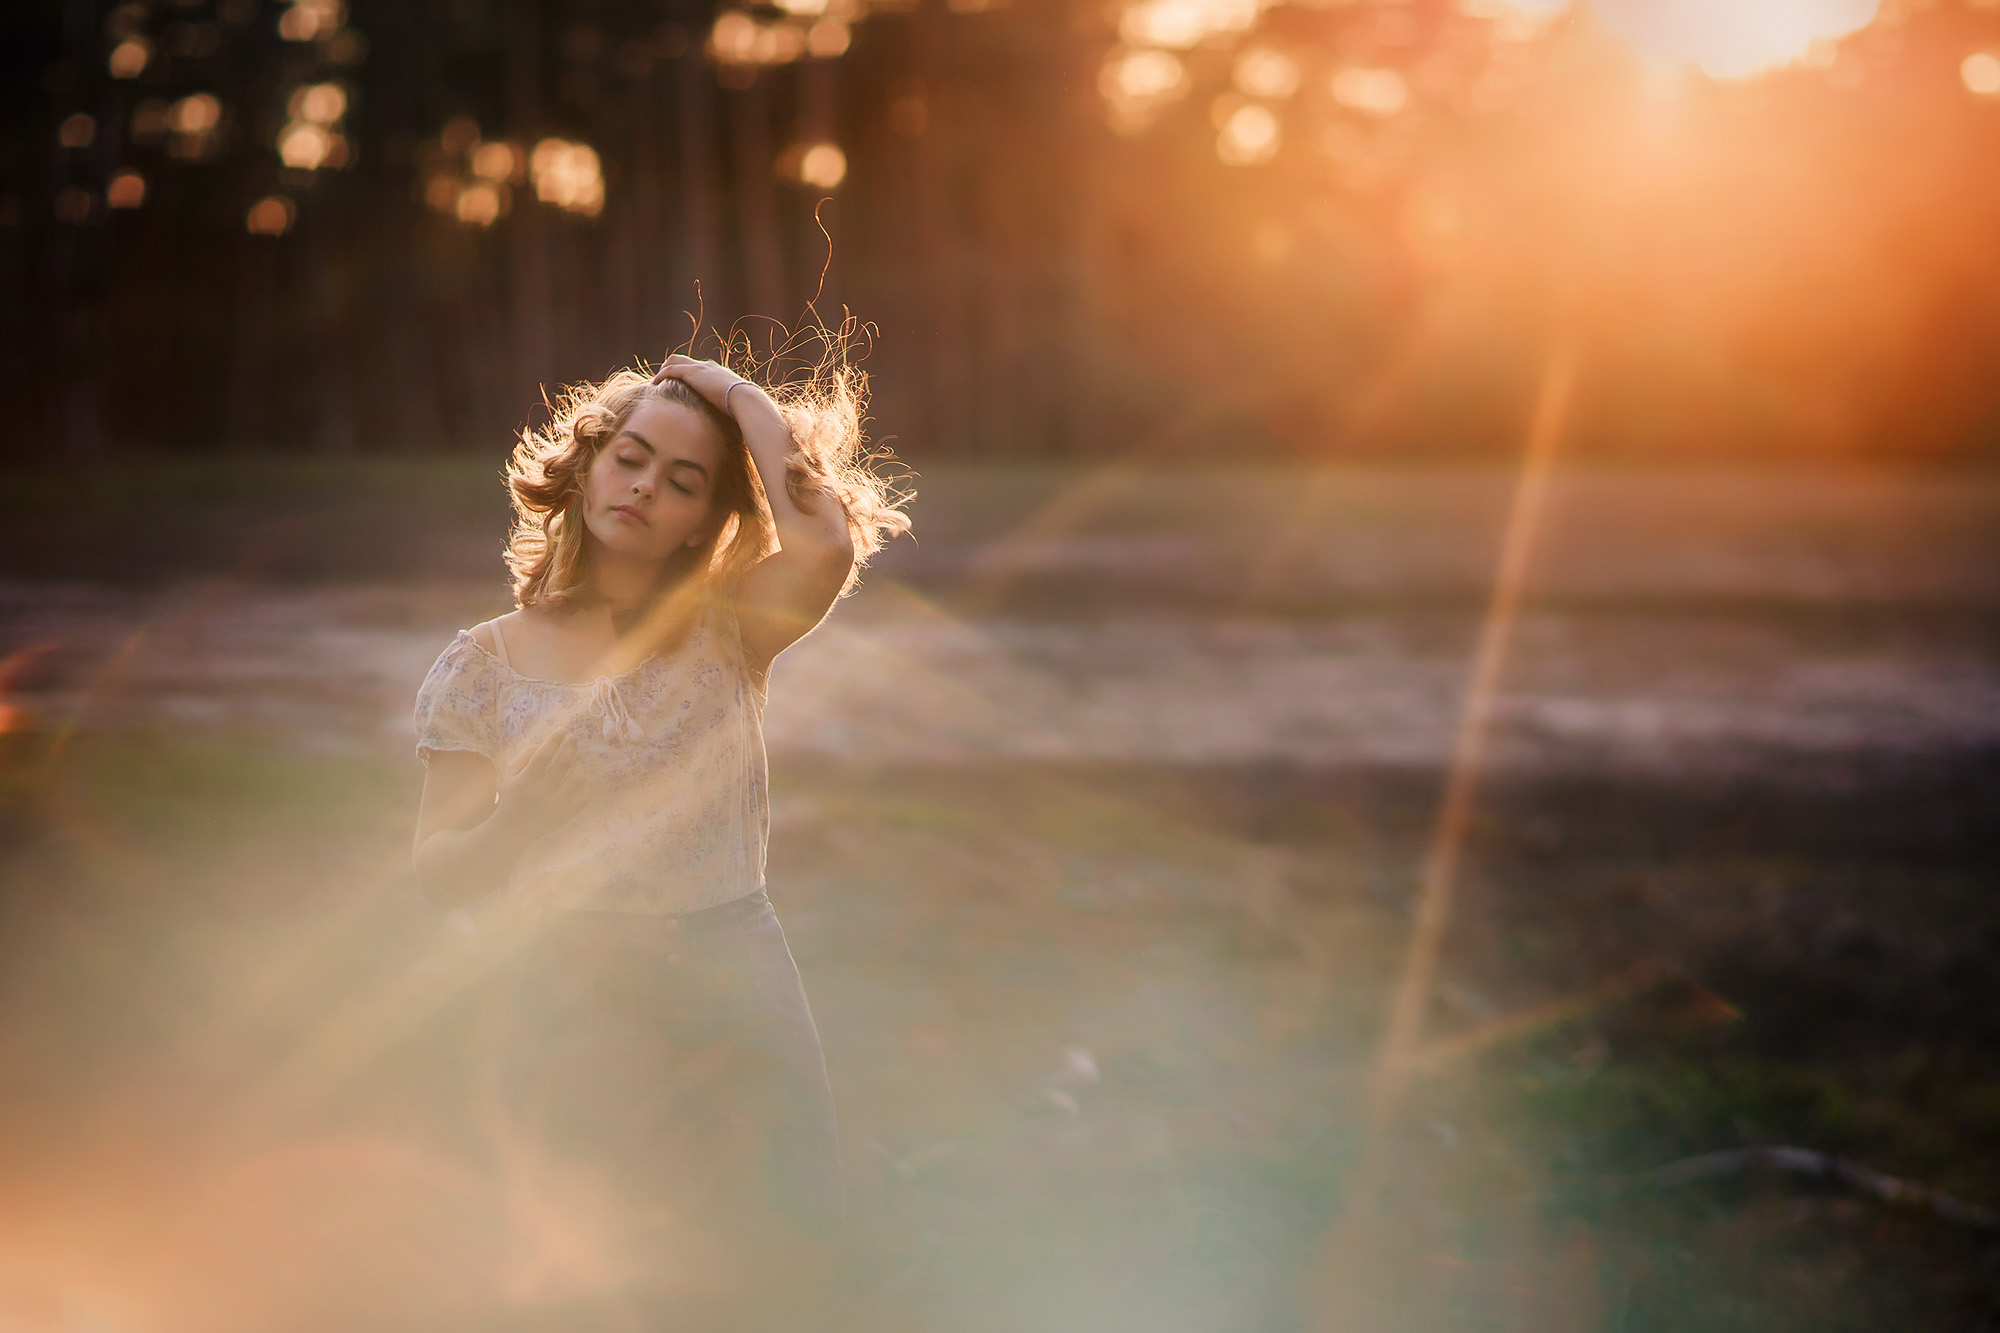 Canon portrait of girl with a lot of lensflare during an indian summer in the netherlands by Willie Kers